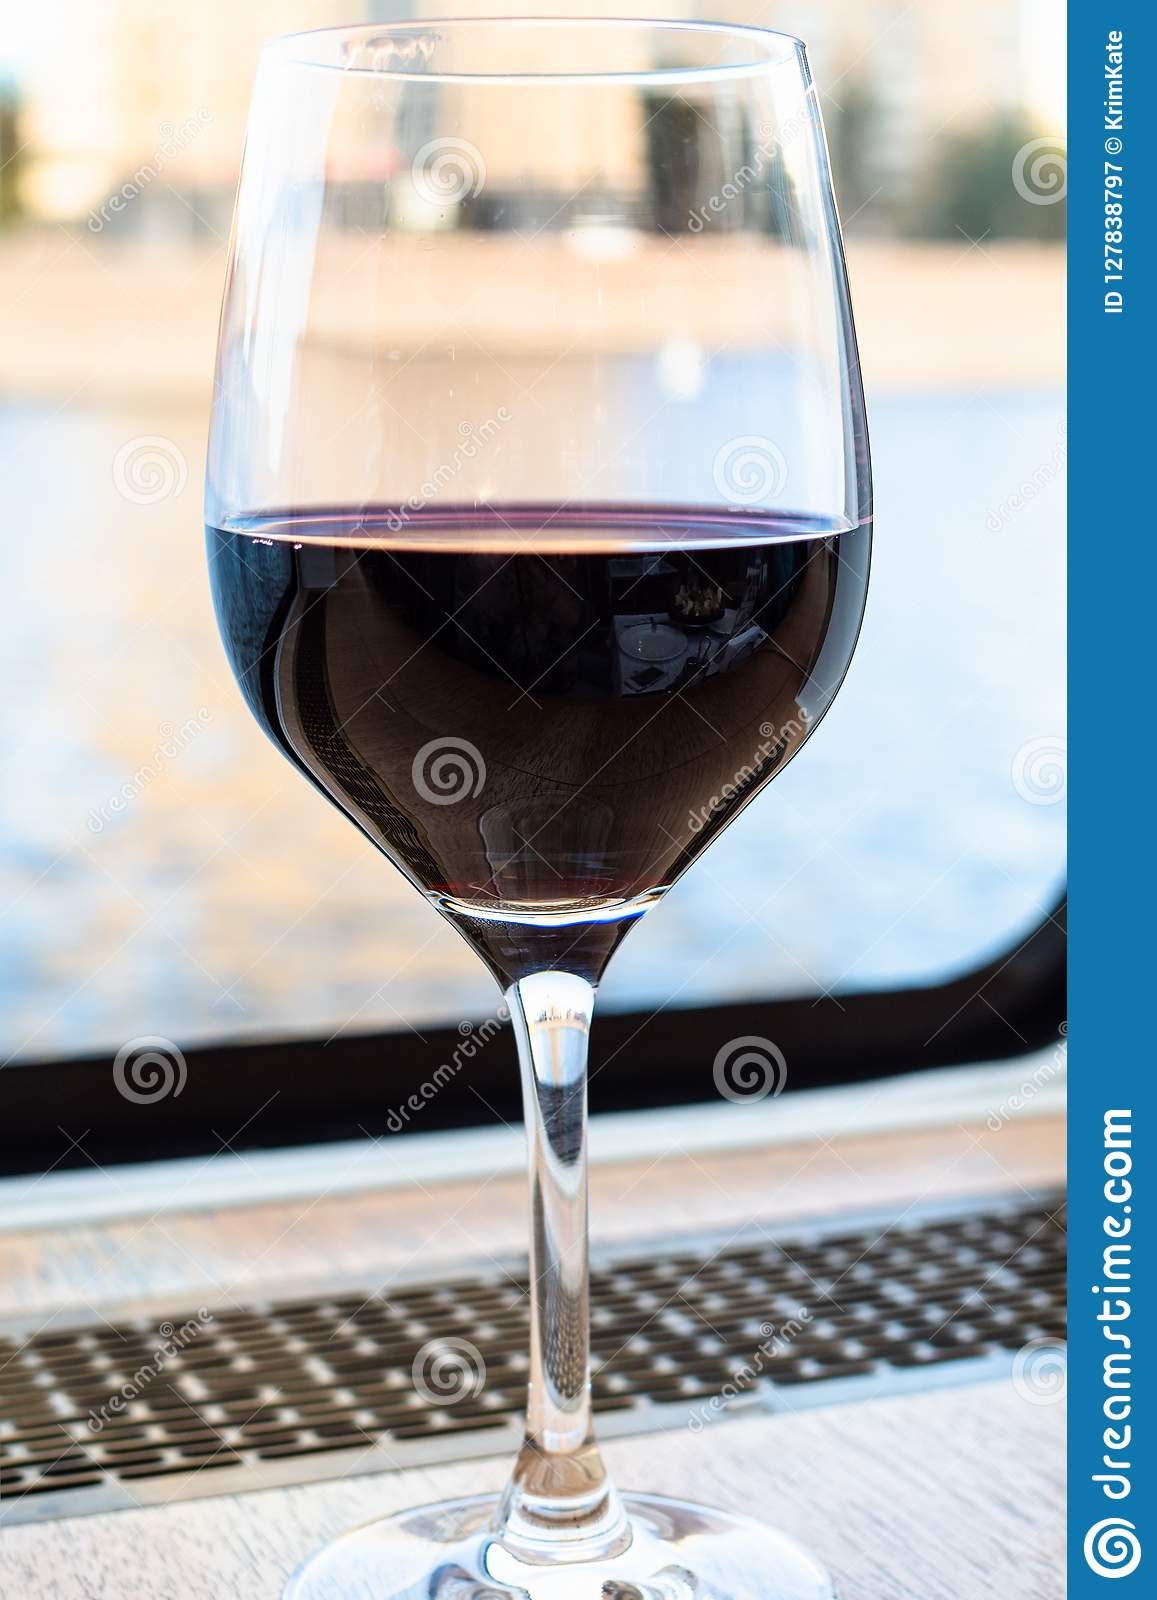 Glass of red wine near window of cruise ship